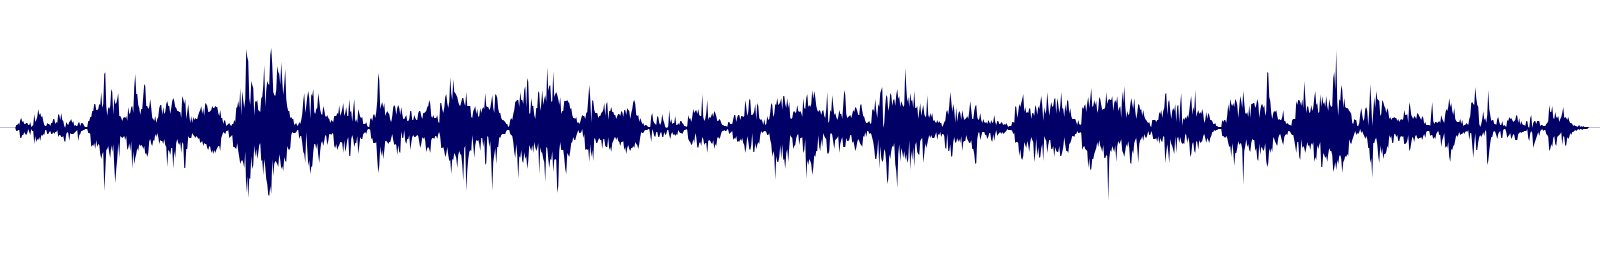 waveform of track #129706